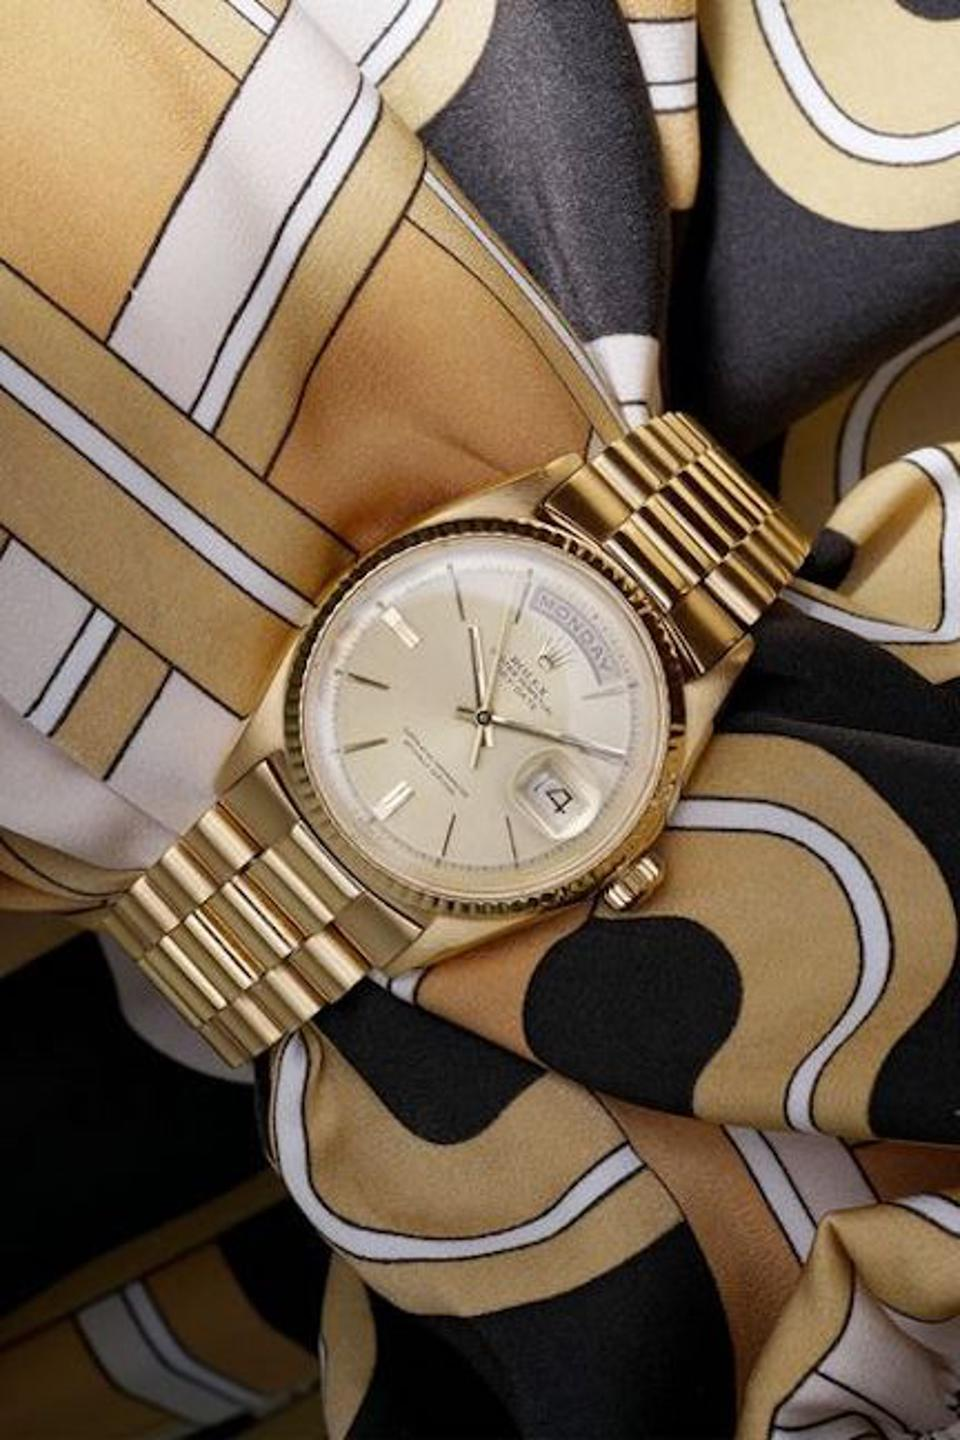 Rolex Day Date watch owned by Jack Nicklaus sells for $1 million at the Phillips in Association with Bacs  & Russo ″